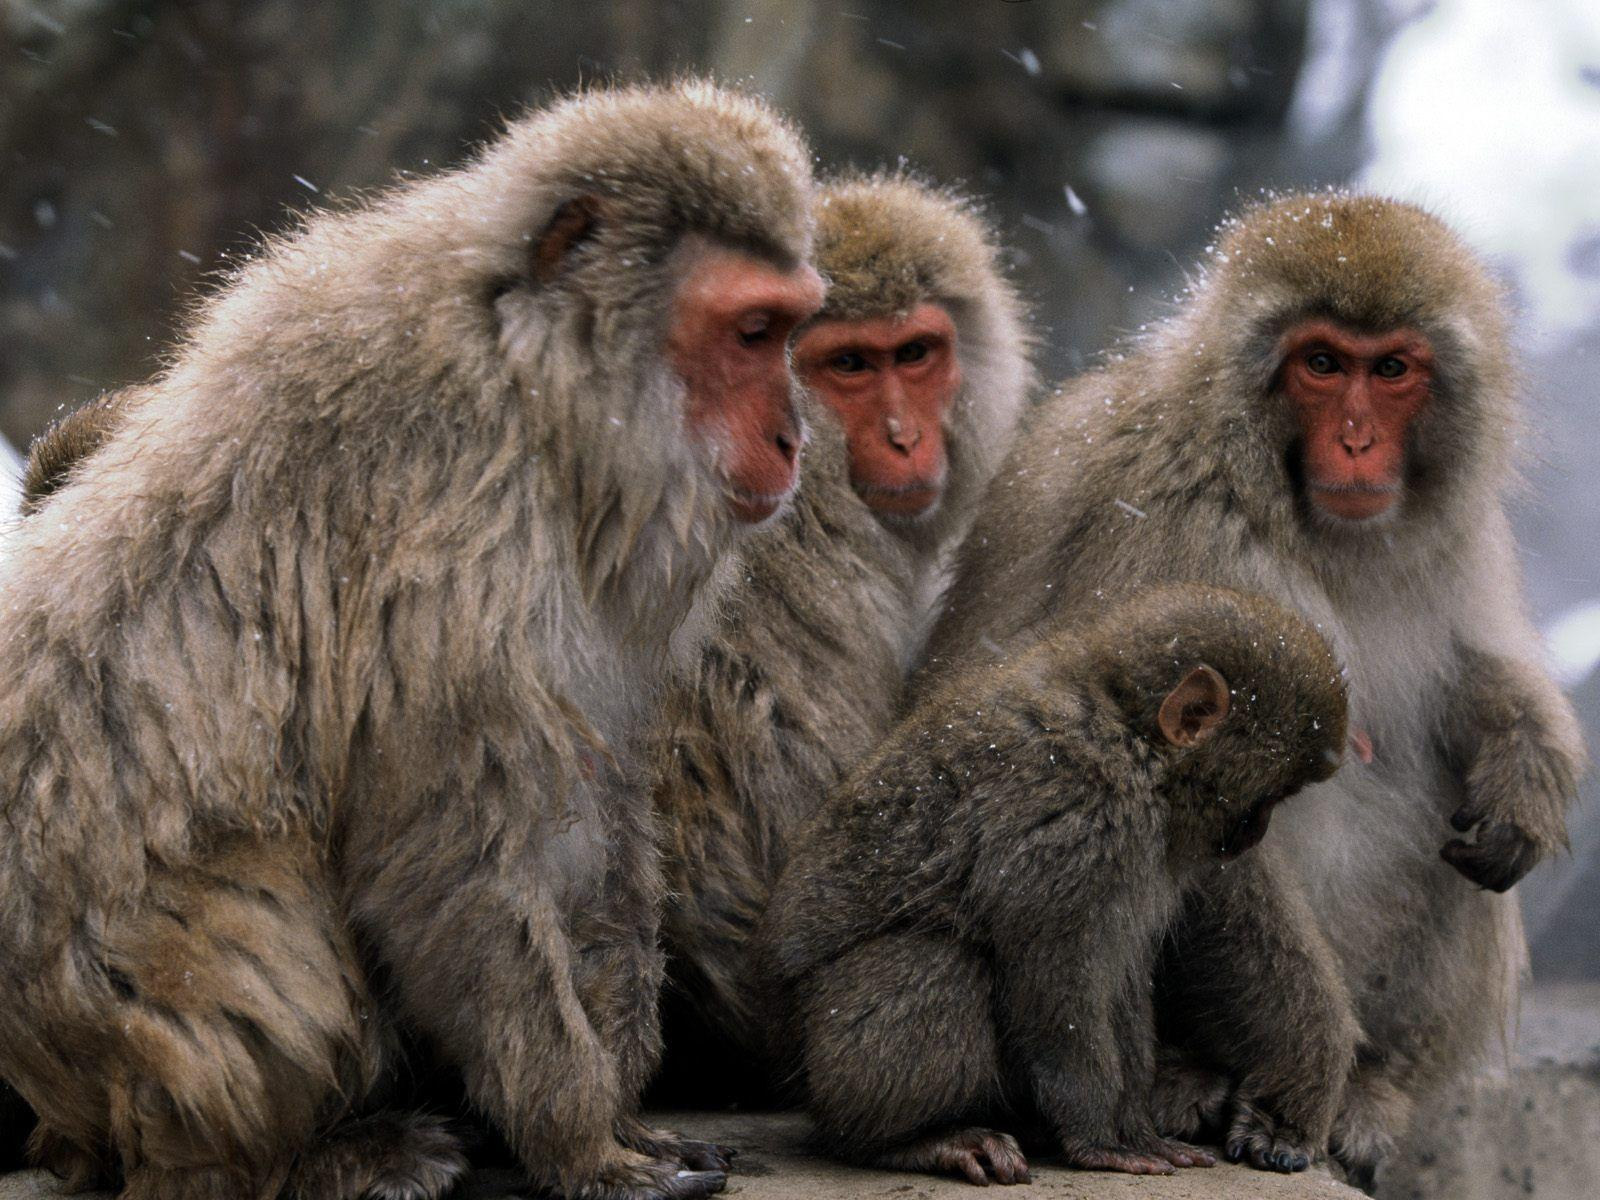 Monkey Wallpaper | coolstyle wallpapers.